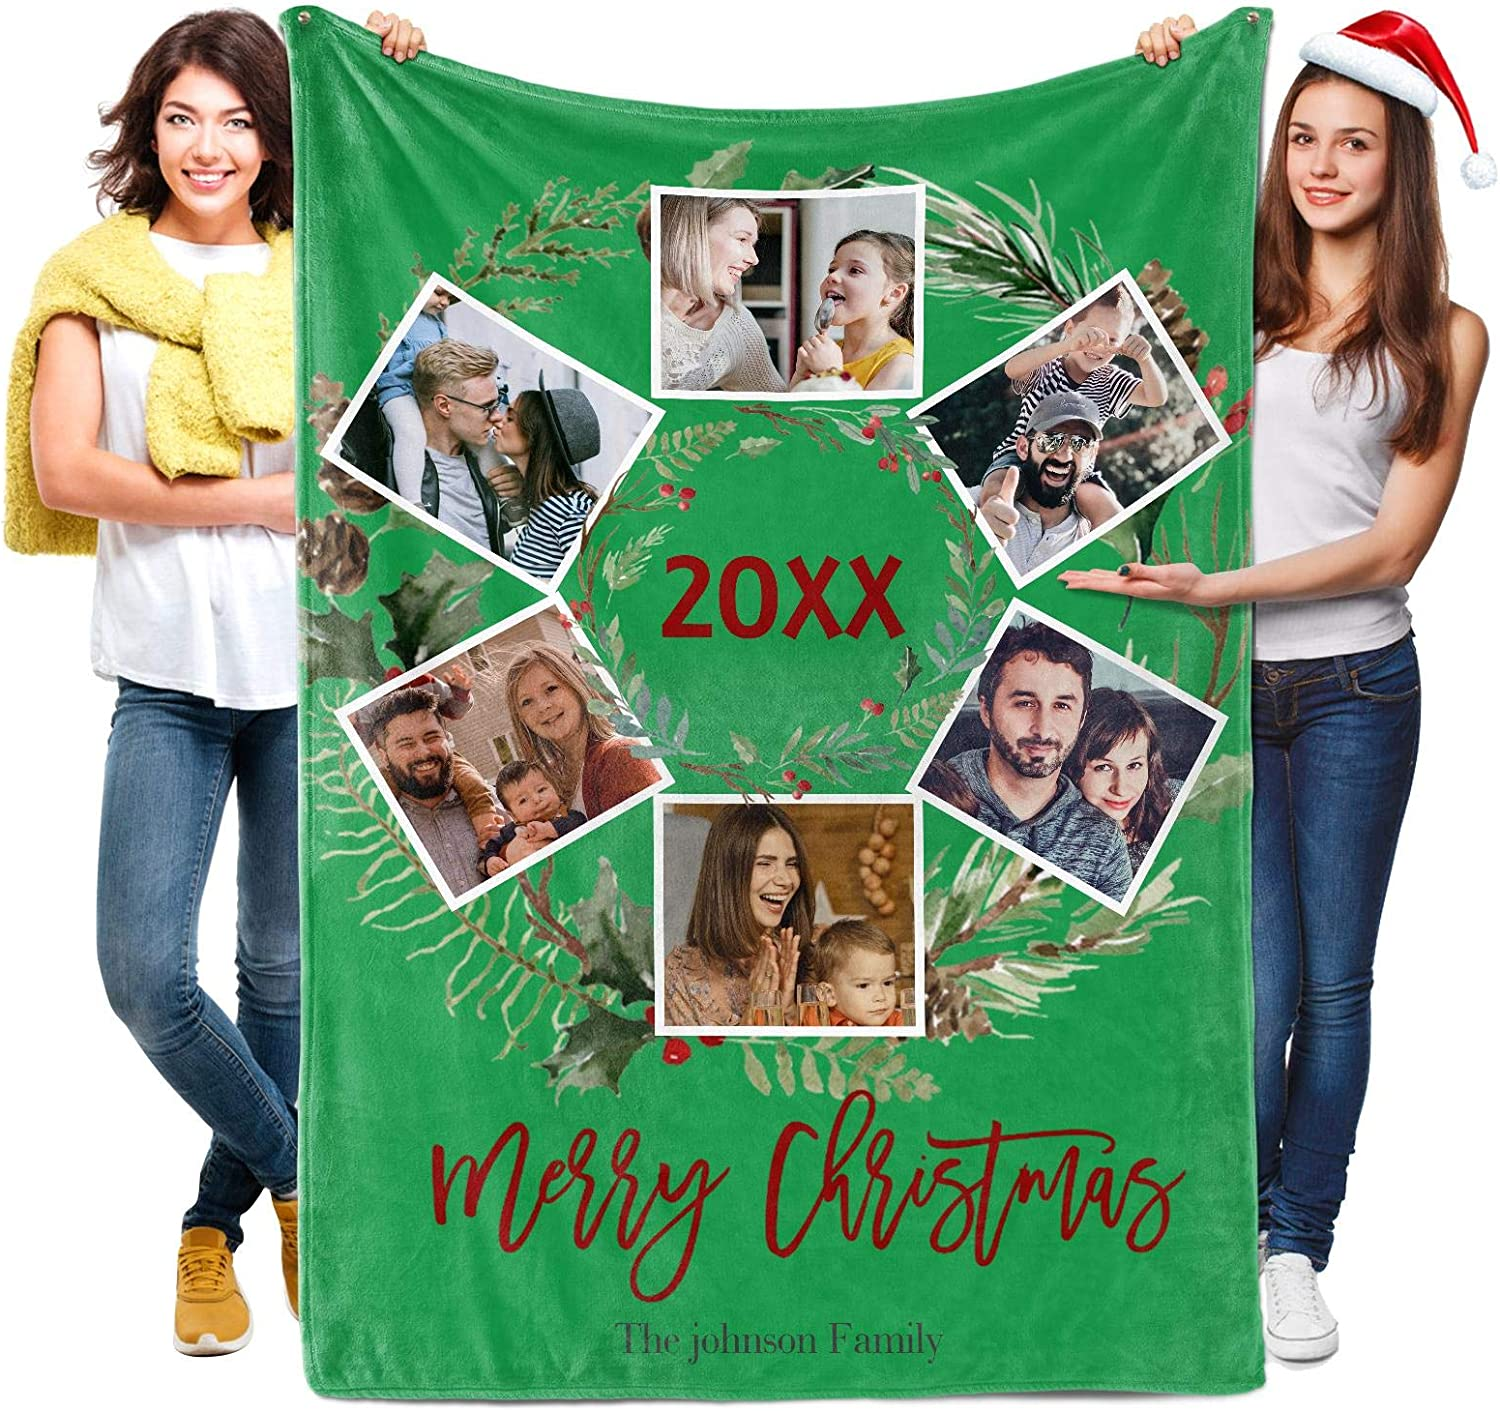 Custom Blanket with 1-9 It is very popular Photo Text Coll Flannel SEAL limited product or Personalized